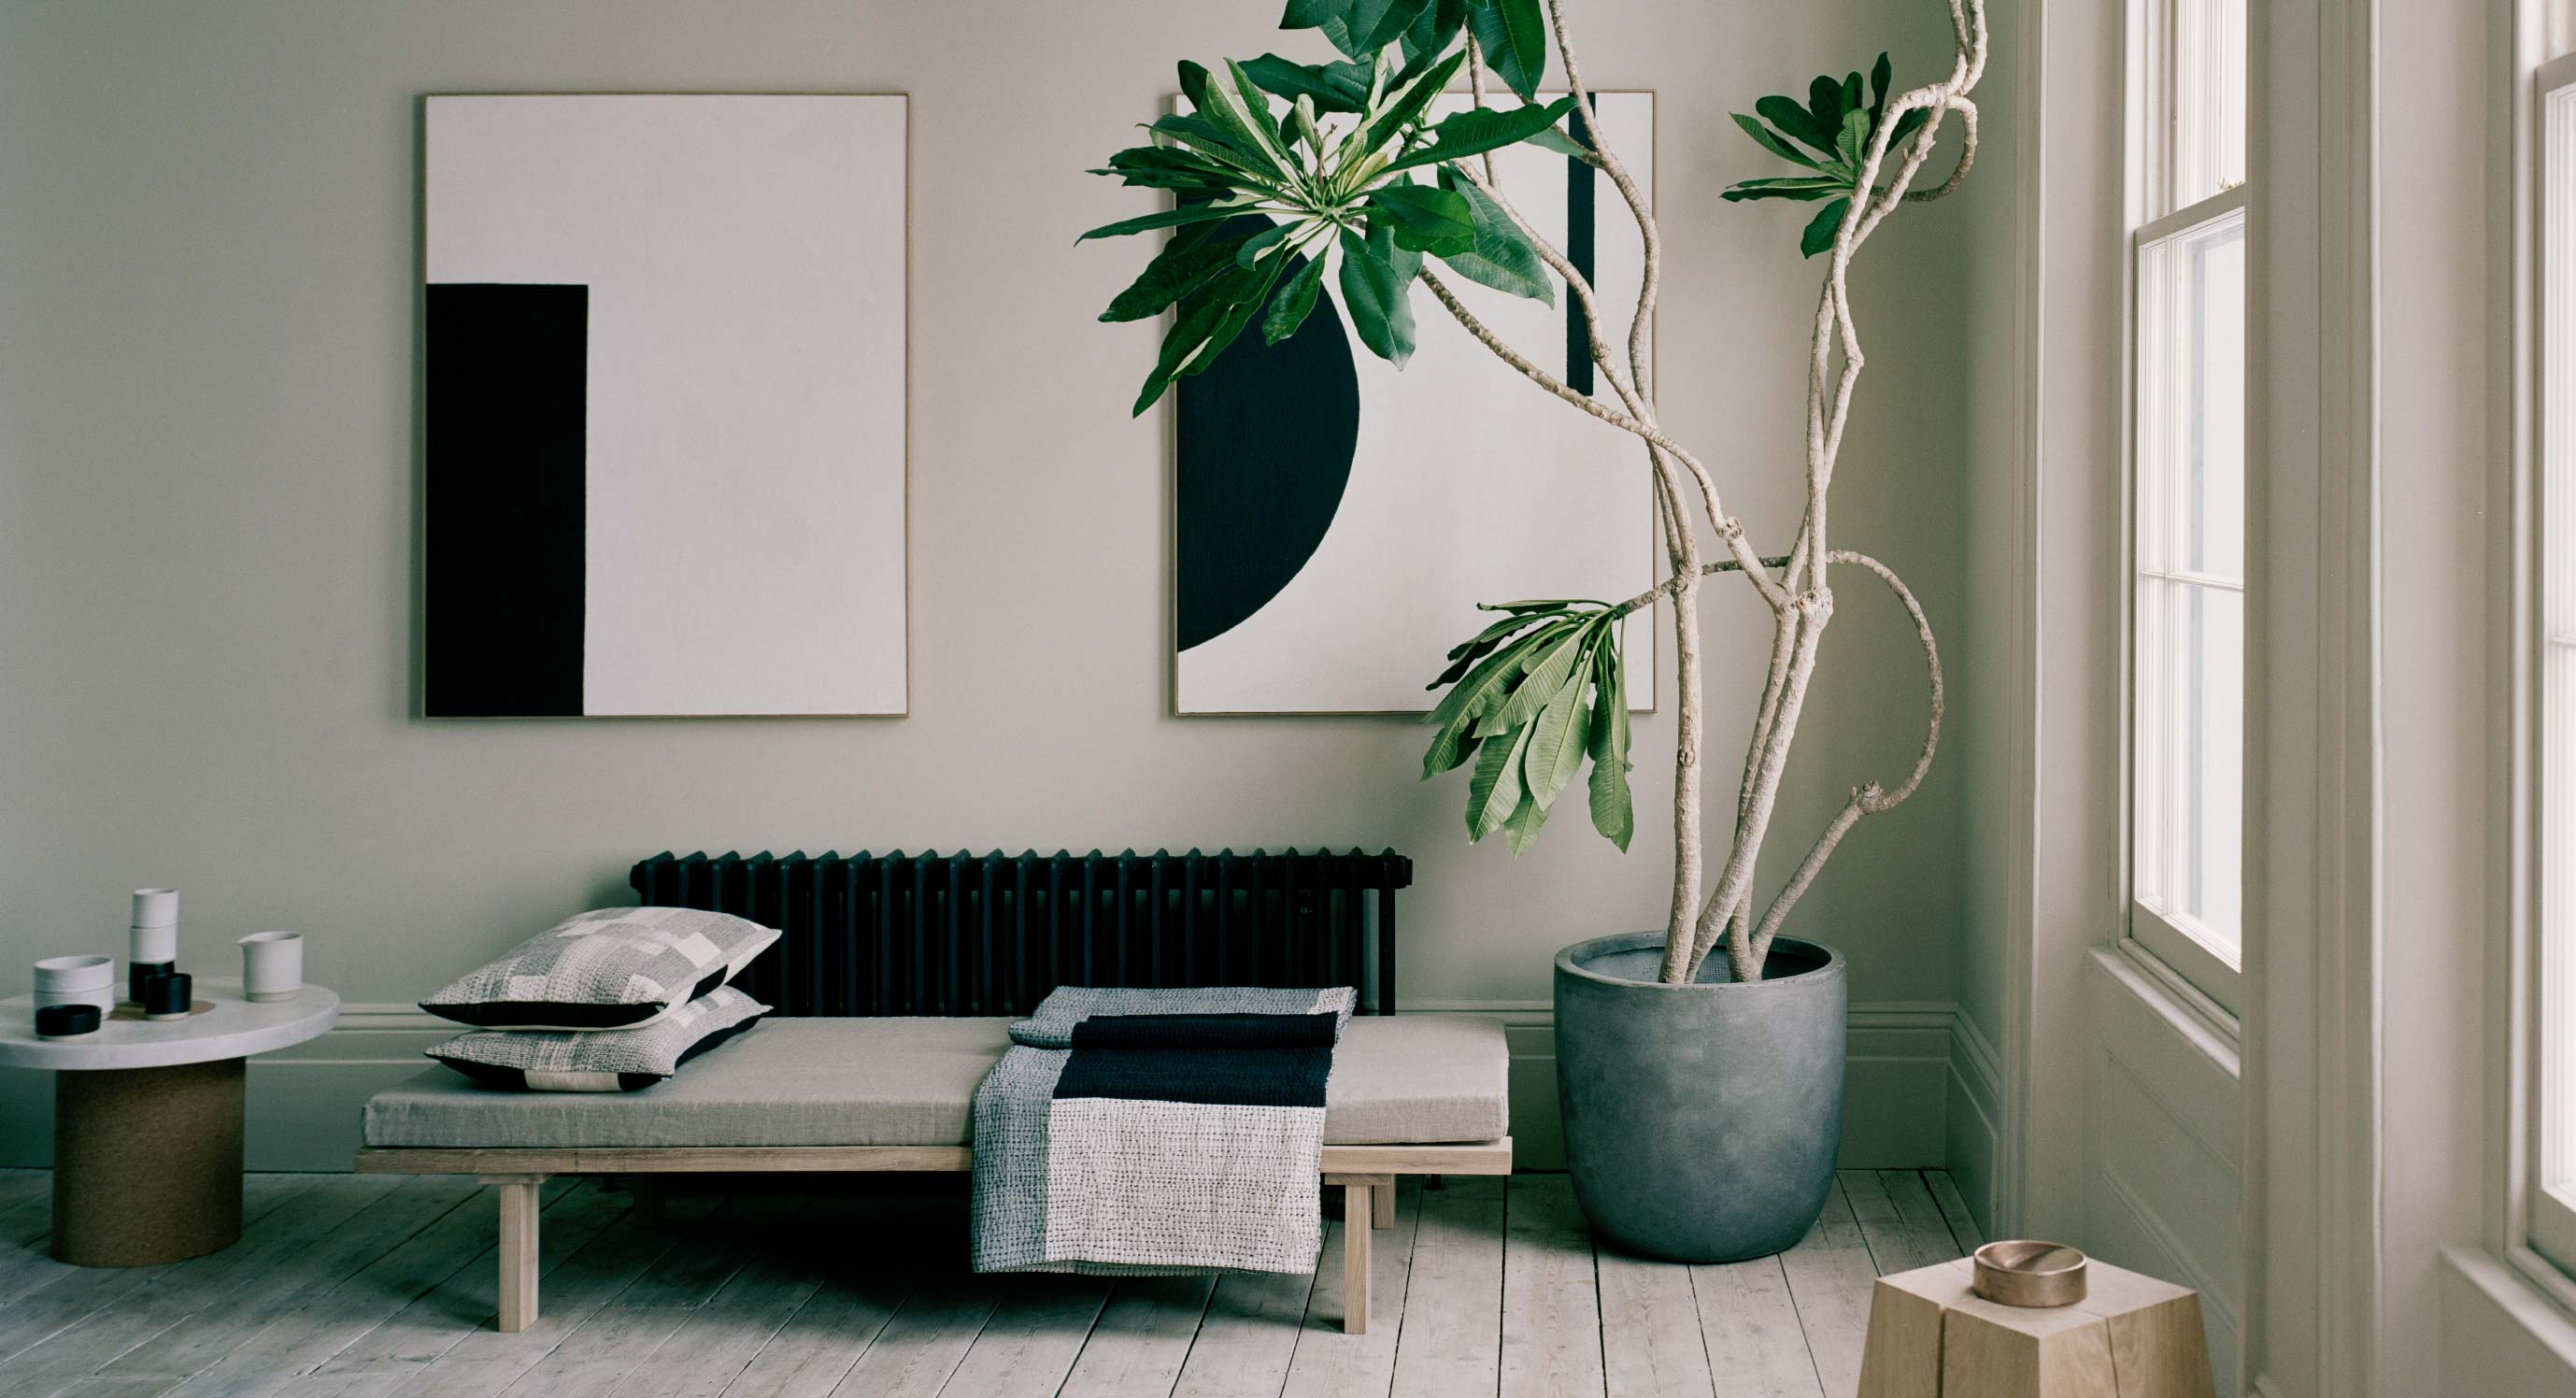 Interior Design Tricks To Borrow From The House of Grey